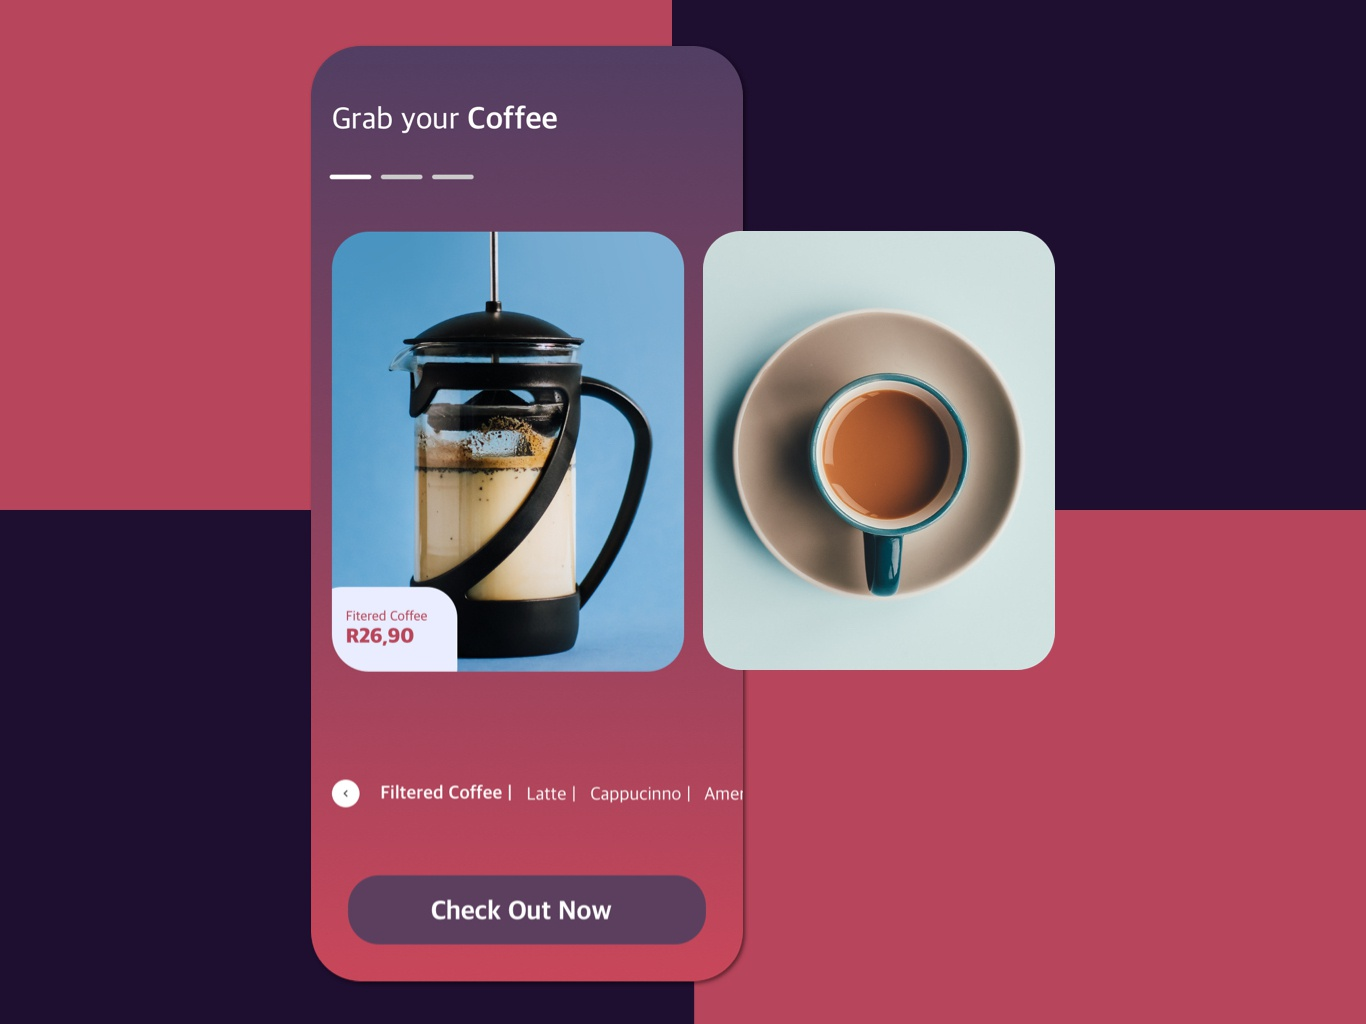 Grab your Coffee coffeeapp coffee mobile app minimal concept uxdesign ux uidesign ui interface product design